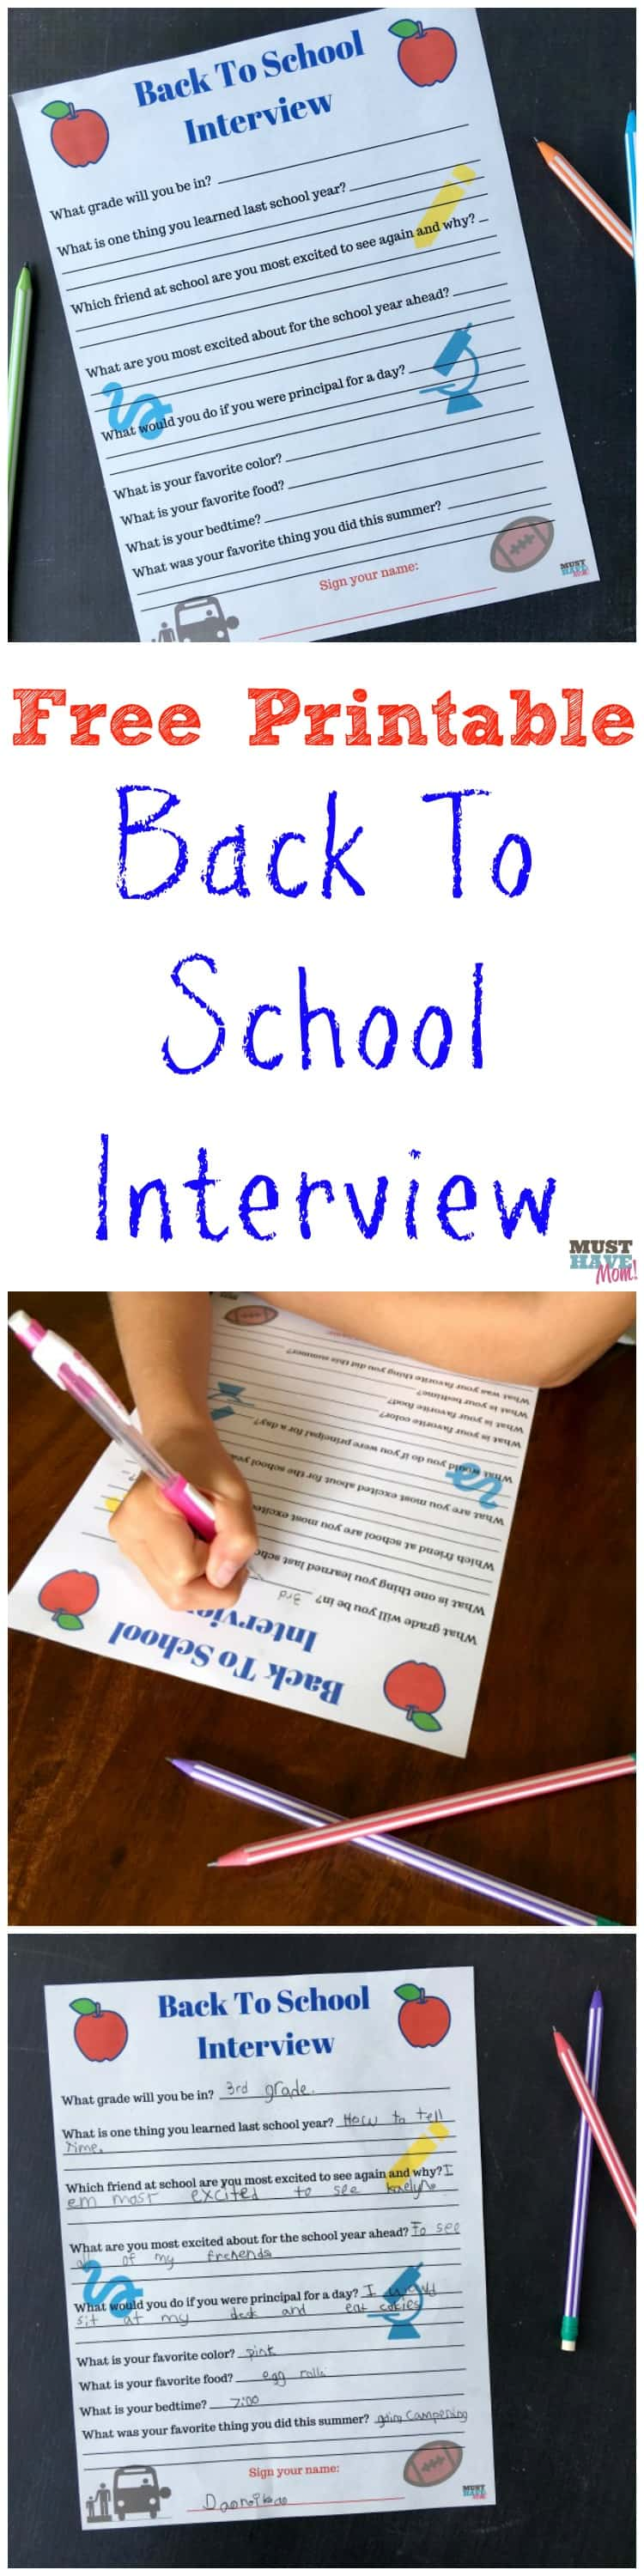 printable back to school interview to do your kids every printable back to school interview questionnaire interview your kids each year before the new